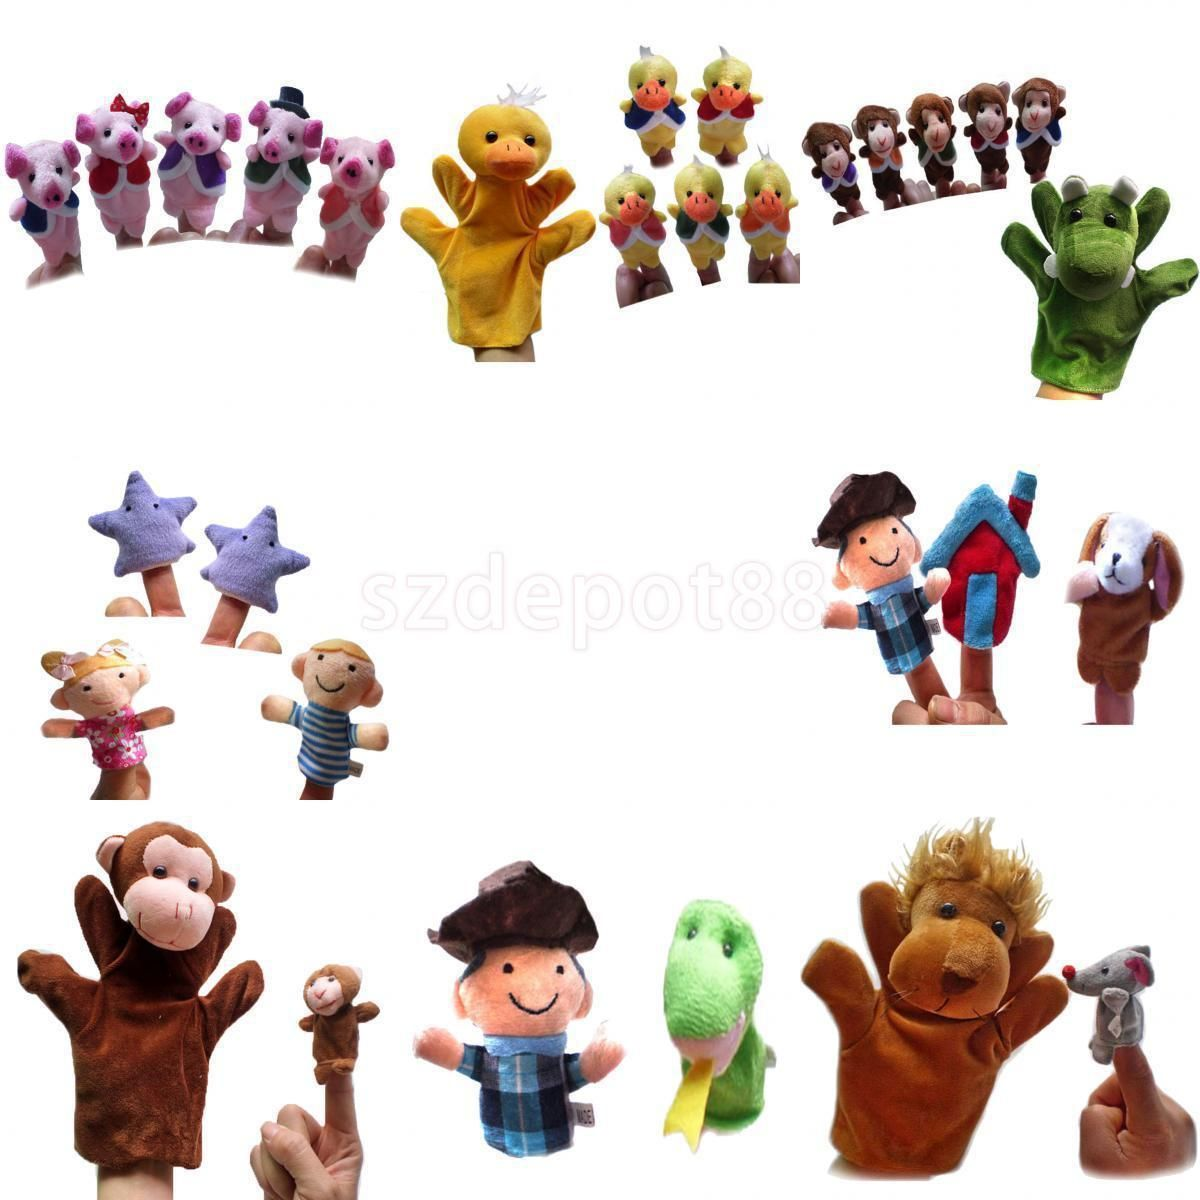 Family Finger Puppets Plush Toy Kids Rhyme Teaching Story Telling Accessories